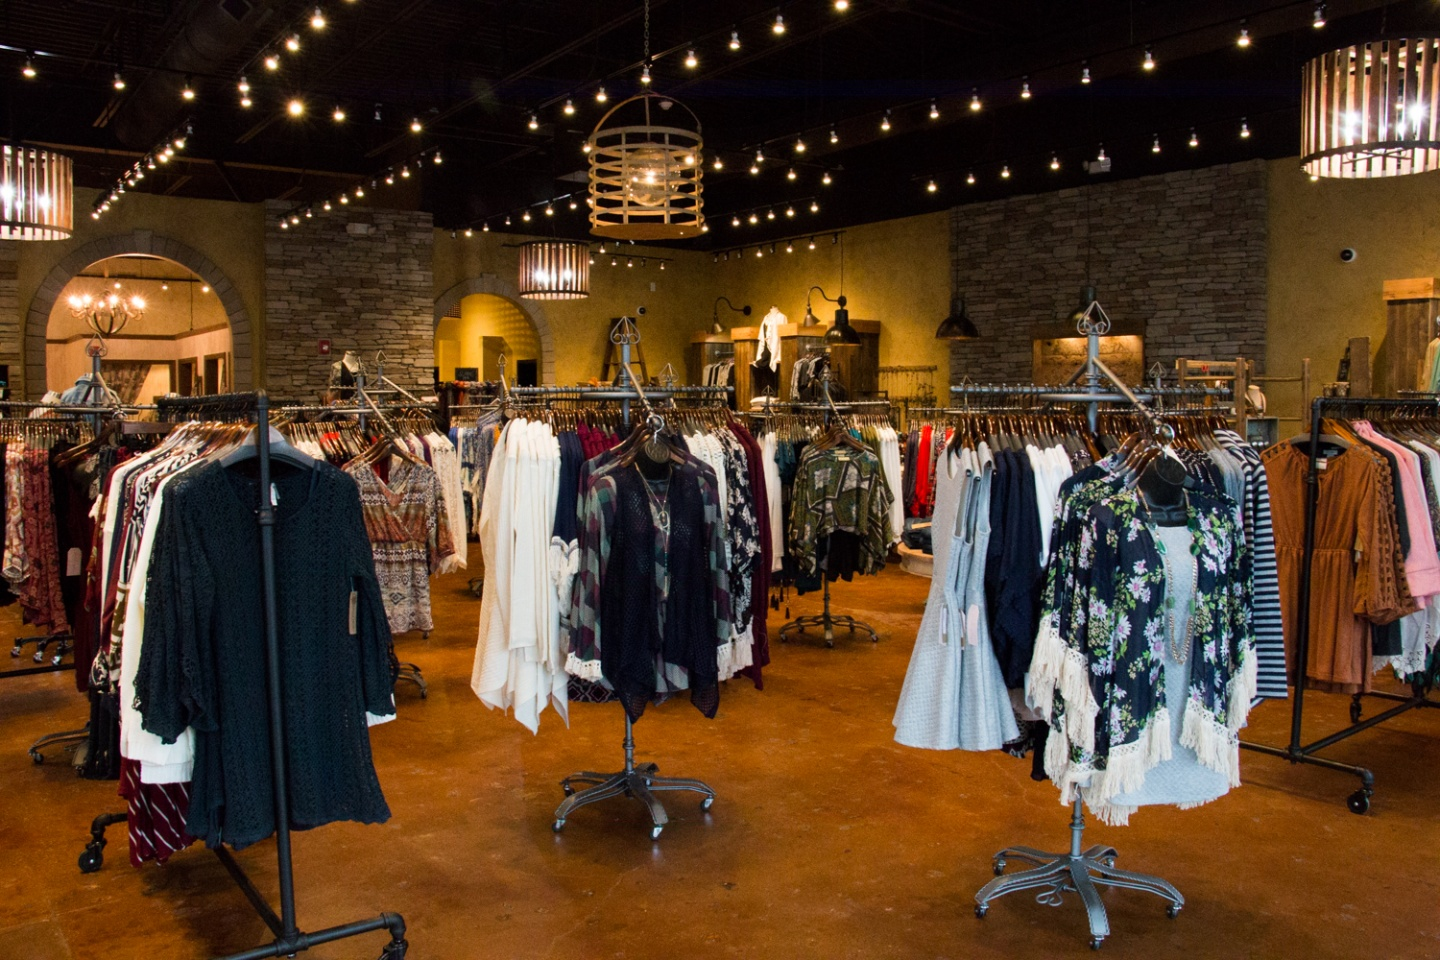 Lizard Thicket, established in , prides itself in selling the latest, most fashion-forward styles and accessories at surprisingly affordable prices. Our stylish clientele can wear our threads with the confidence that their wardrobe is as unique as they are.